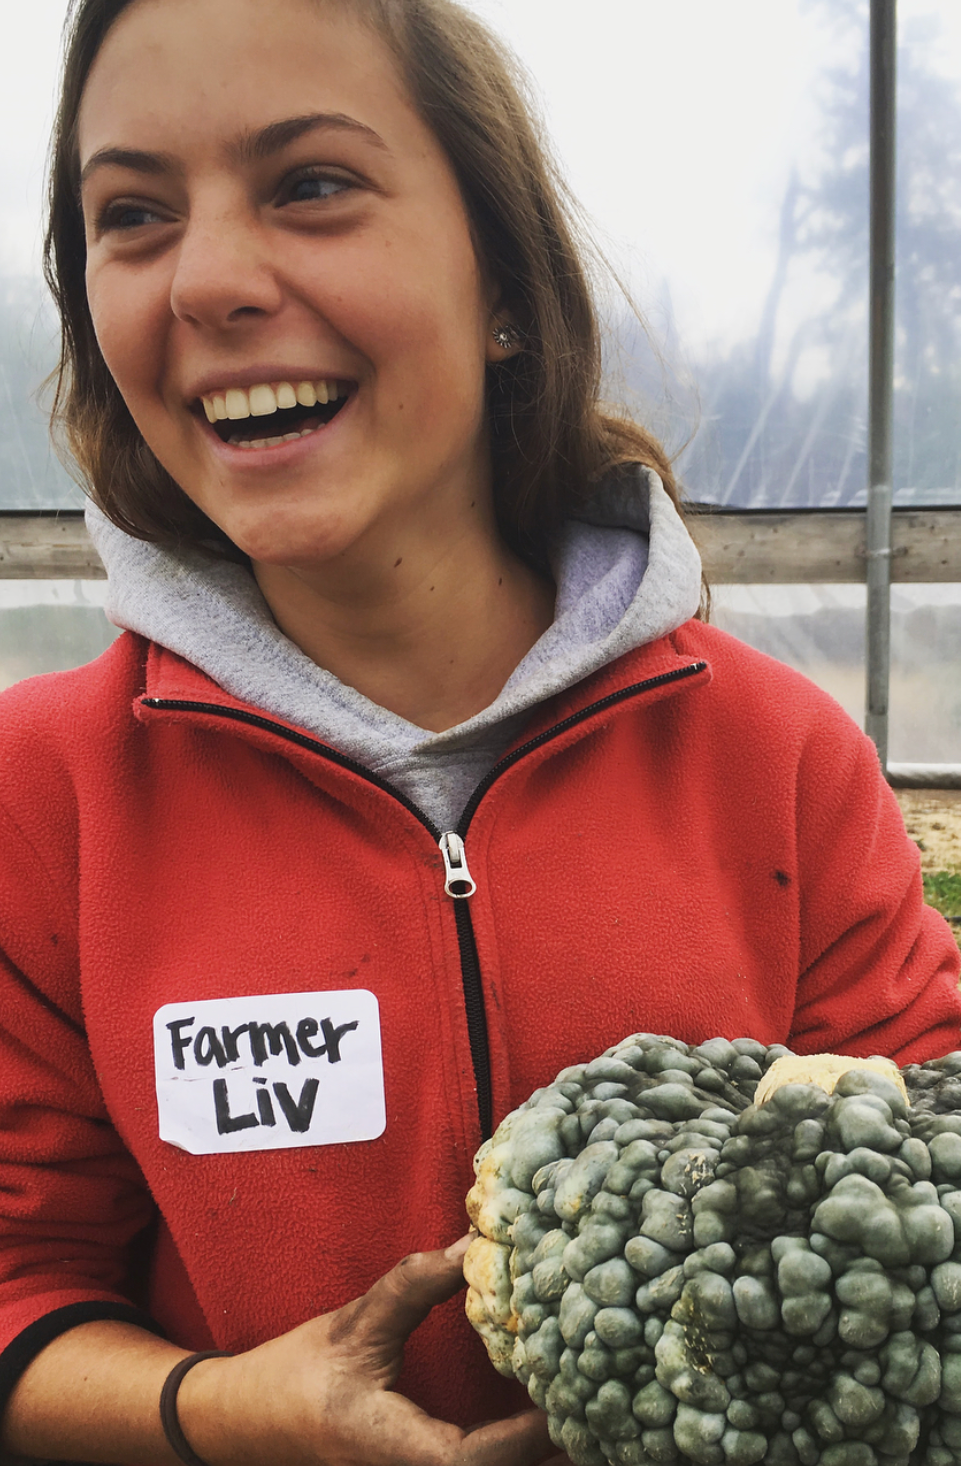 Meet Olivia. . . - This blog is written by Olivia DiMichele, a recent graduate of Hotchkiss Schoolwho decided to spend the growing season with us this year as a part of our first ever Gap Season program. She arrived in June, joining in with a family as part of a home stay and equipped only with a bike and a map of Missoula and a schedule of where to be when. She made a wonderful summer out of it! We were lucky to have her to test out the ropes: motivated, hard working, and full of enthusiasm, she certainly made a difference. So here she is, to tell the season from her perspective.